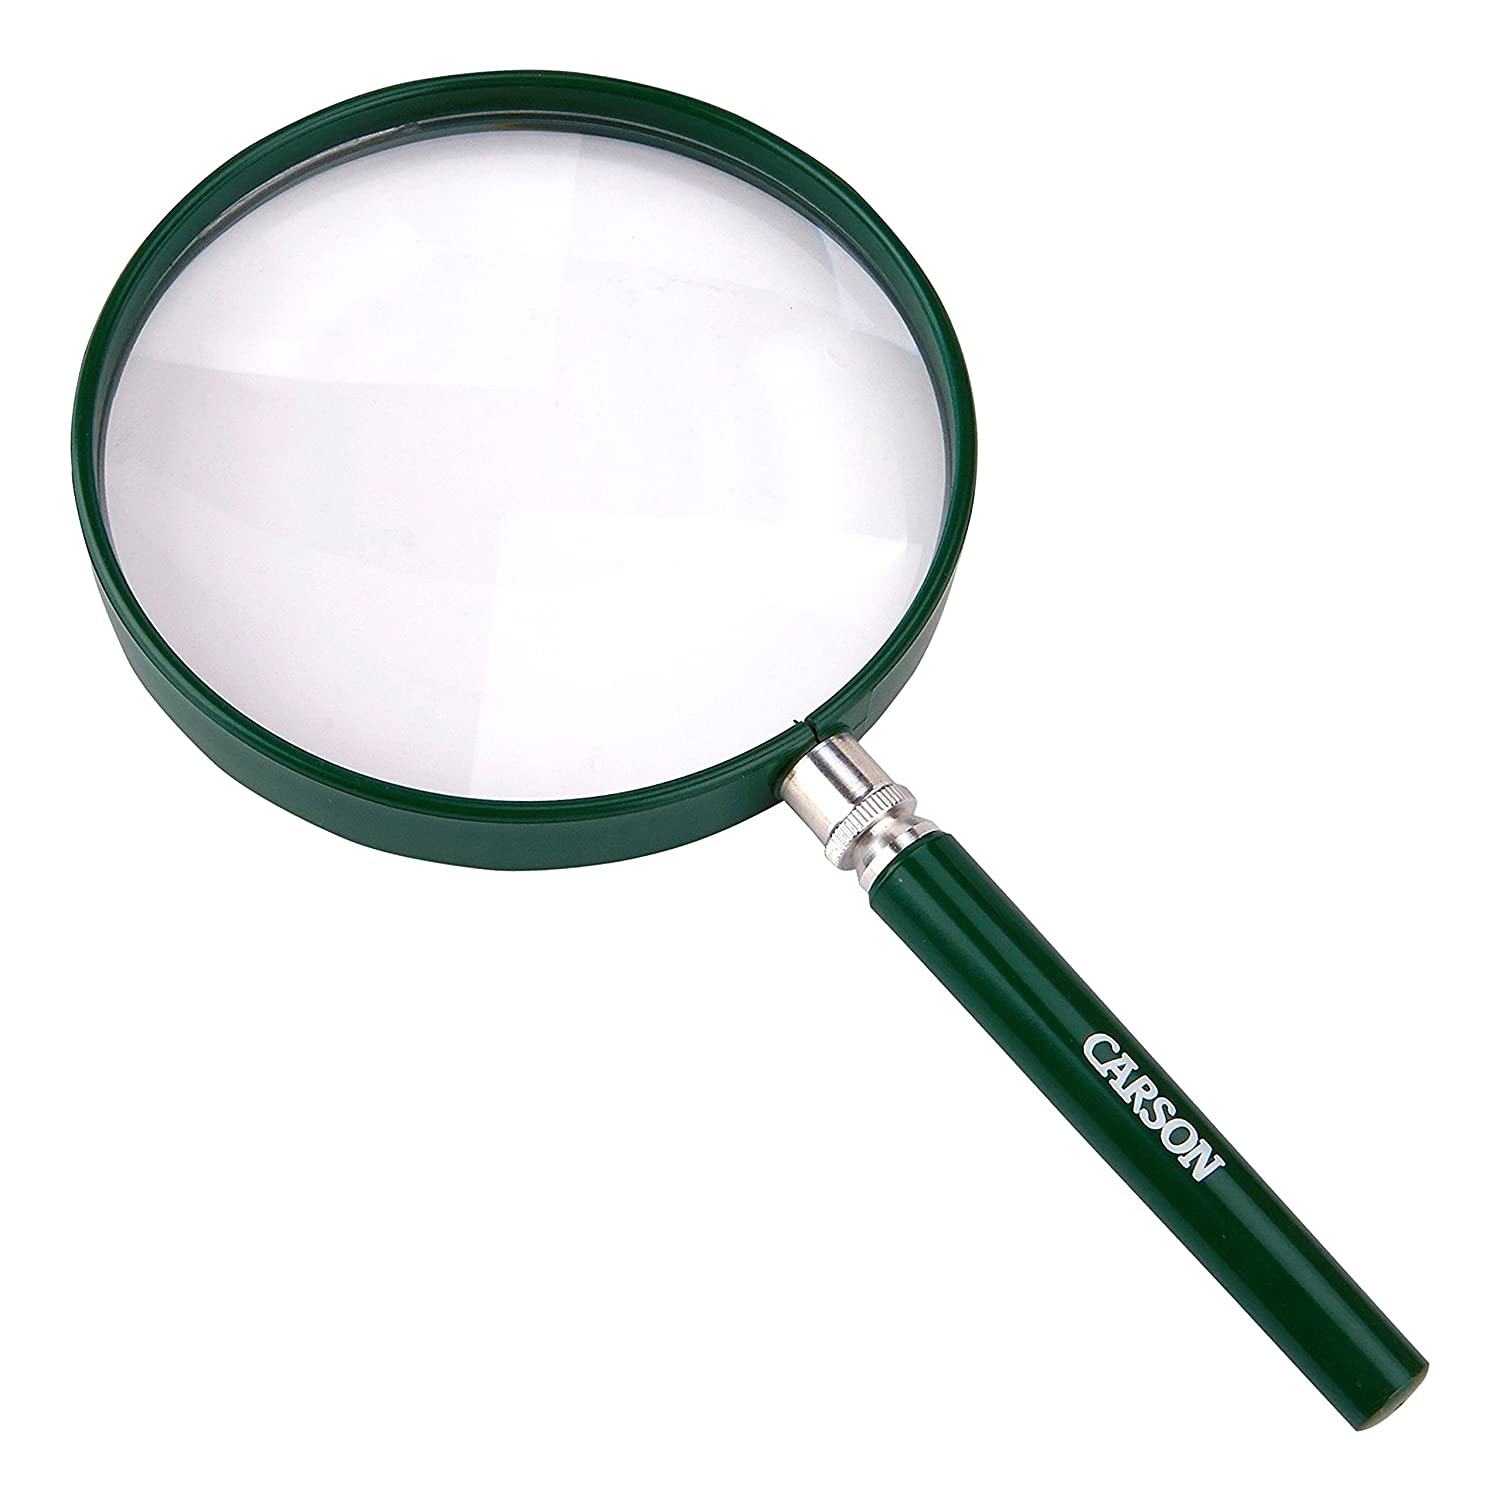 Carson Bigeye Magnifiers with Oversized 5.0 inch Distortion Free Lens for Reading Inspection Exploring Hobby Crafts and Tasks HU 20 HU 20AMMU